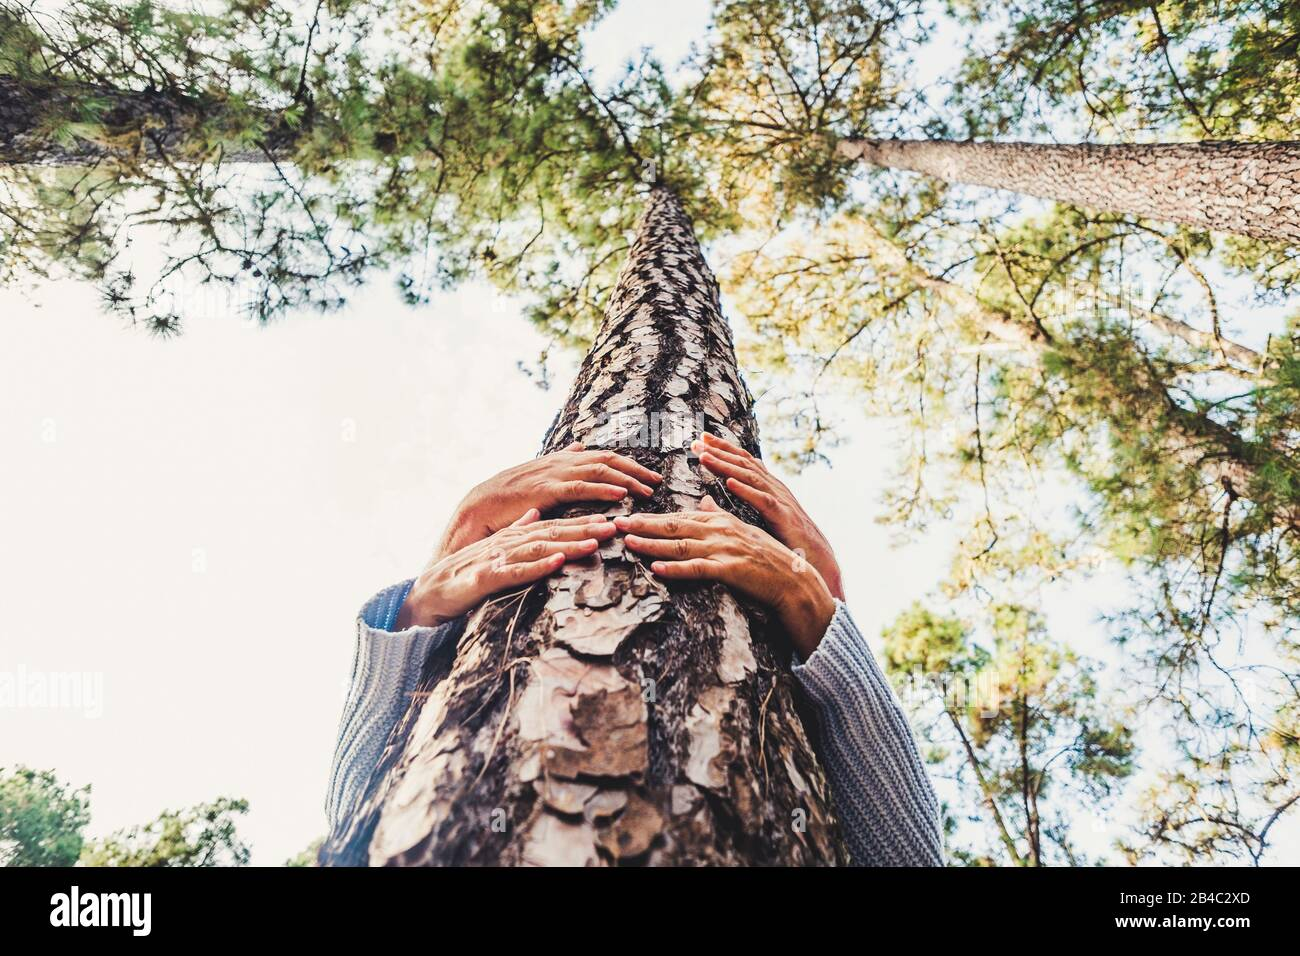 People protecting trees from deforestation concept with couple of senior caucasian hands hugging with love a pine in the wood - earth's day and save the planet positive message Stock Photo